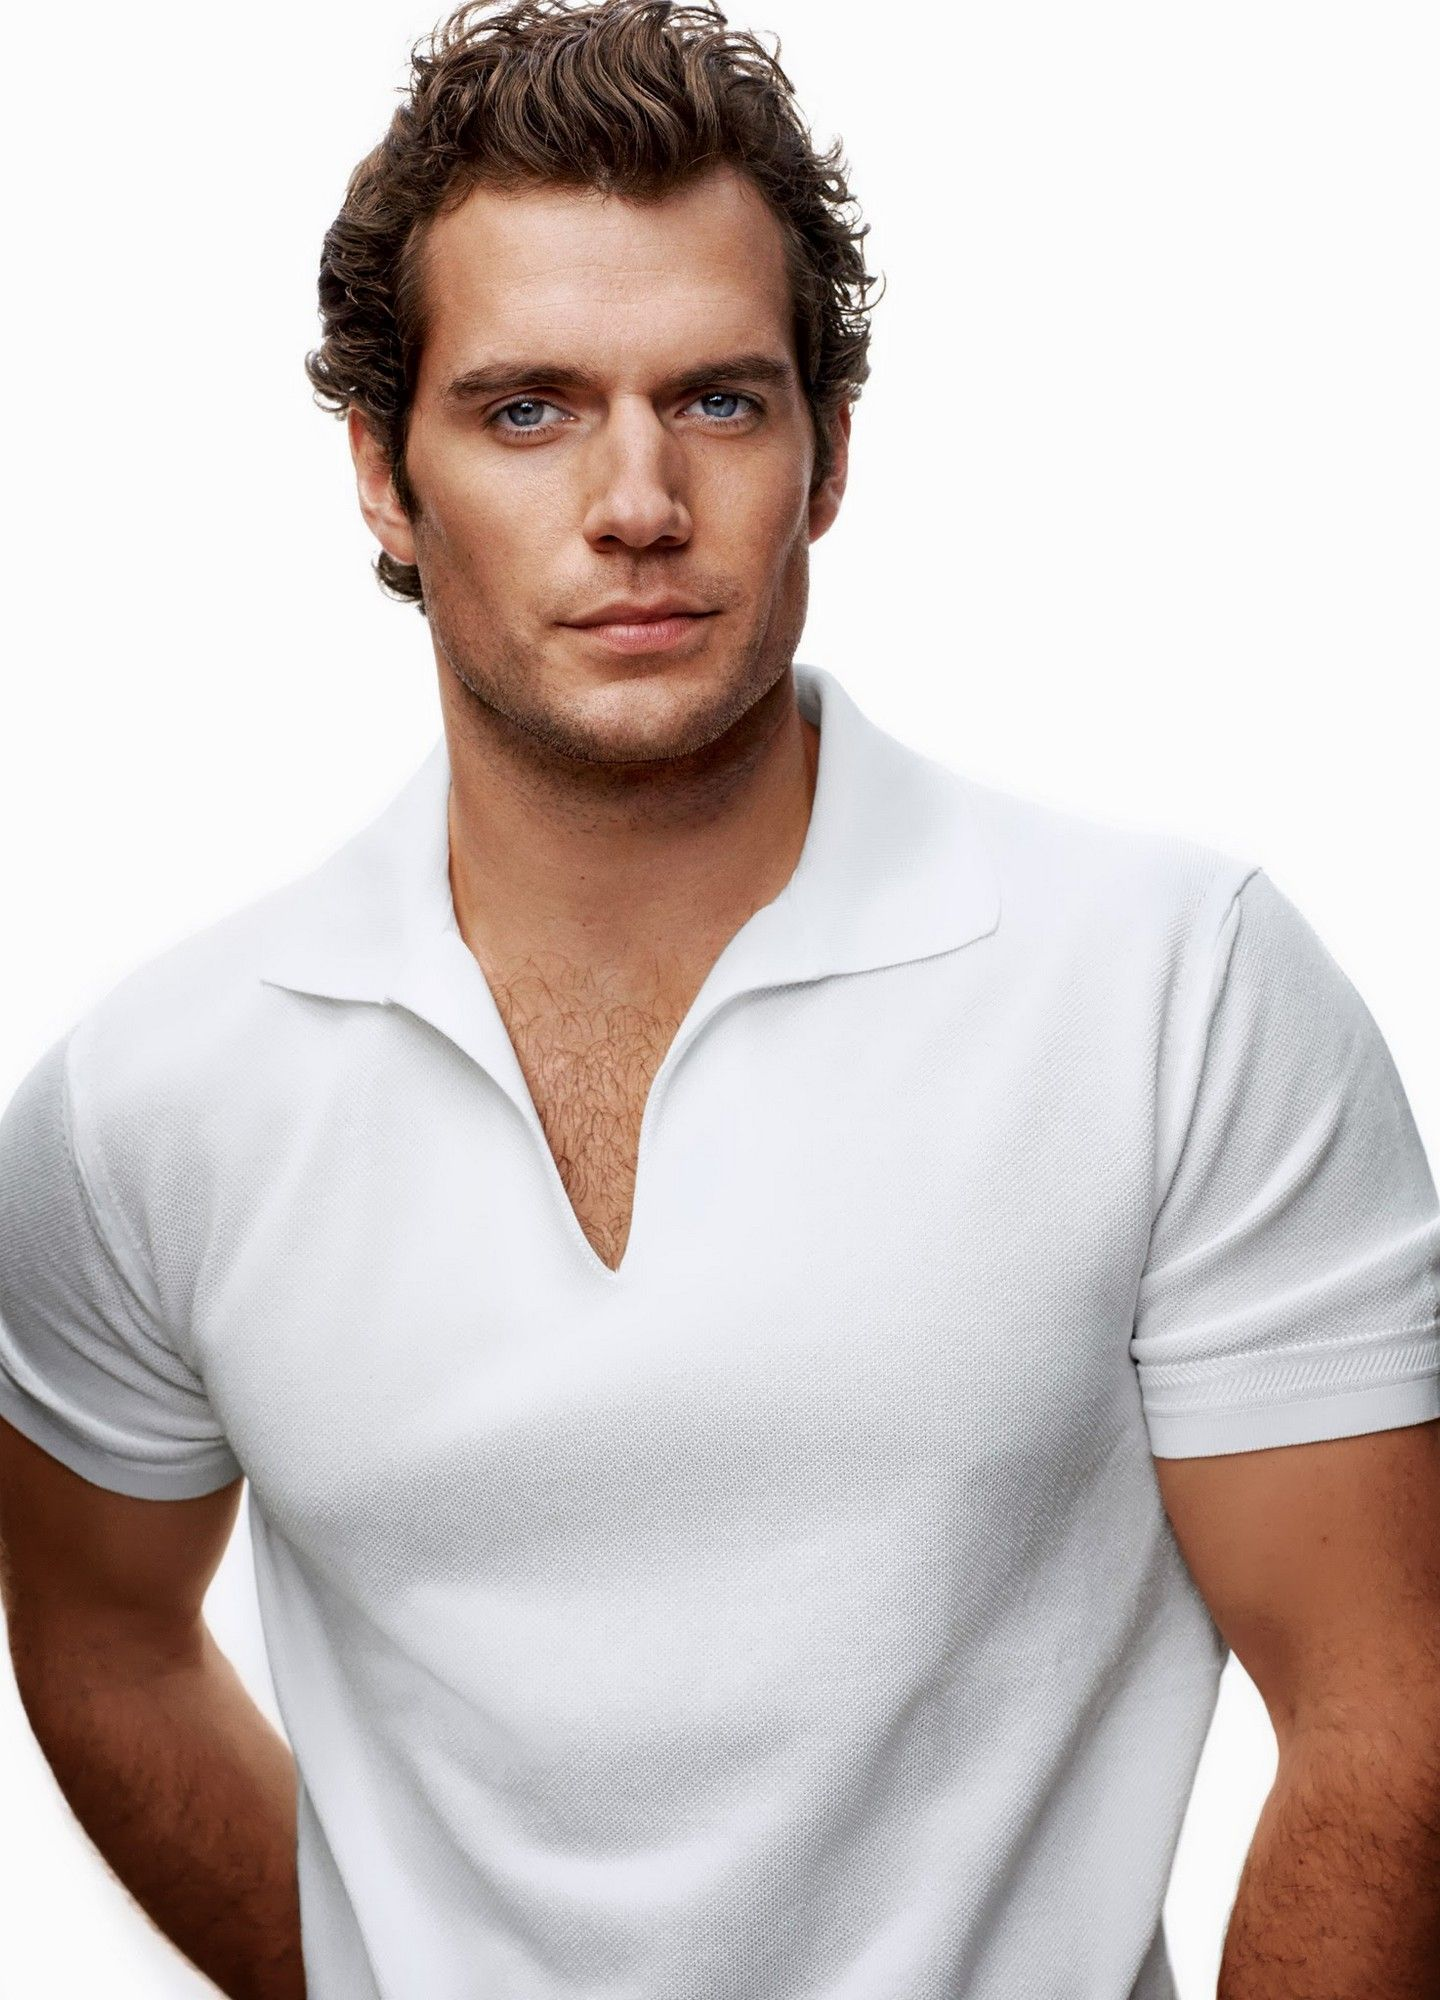 Henry Cavill Responds To 'Superman' Firing - That Grape Juice